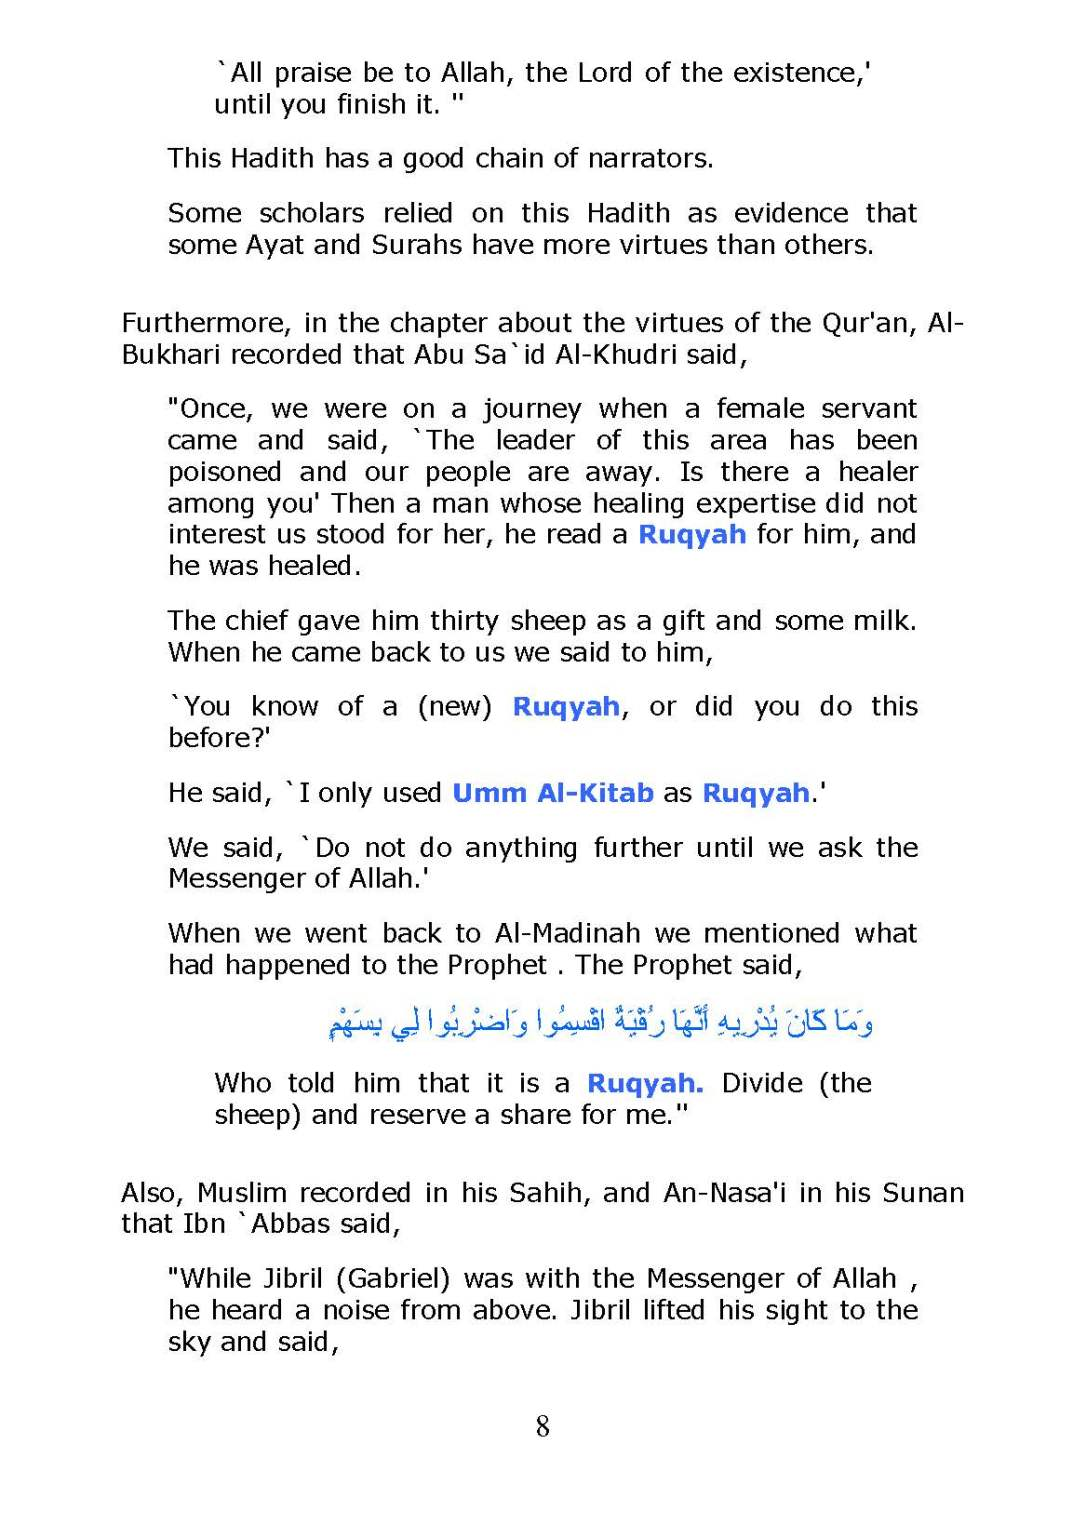 001Fateh_Page_08